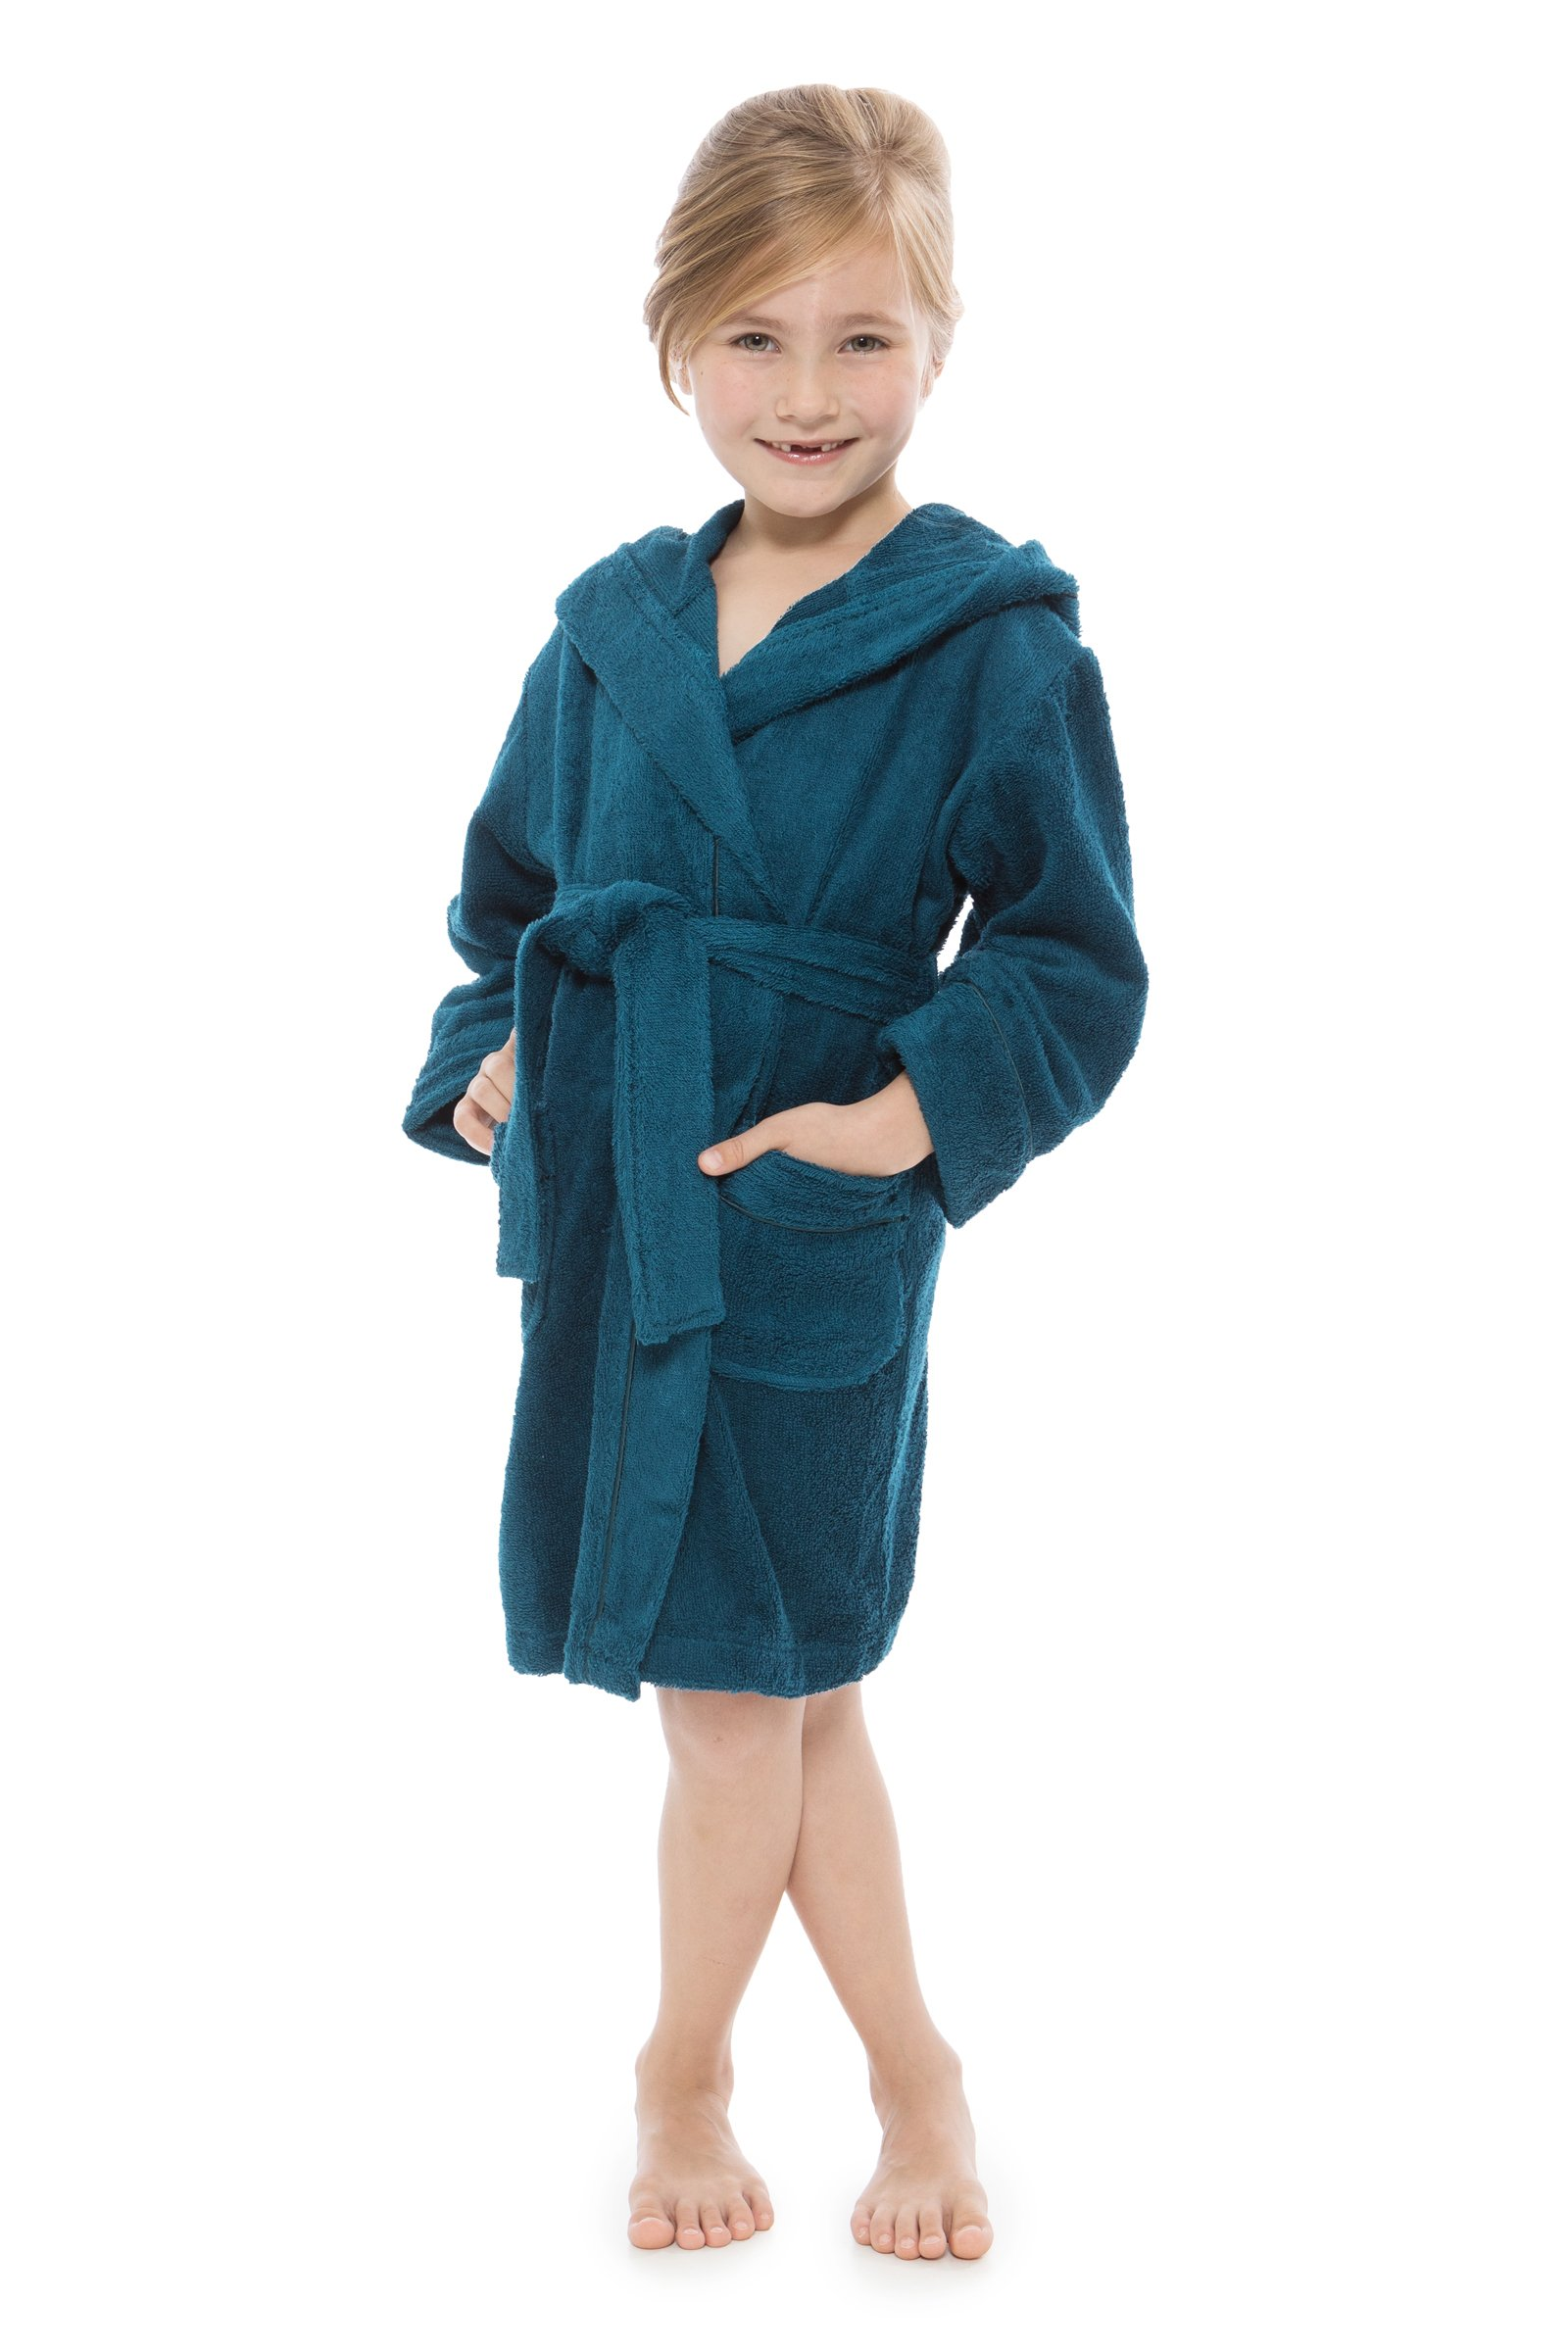 a7f14422ca Kid s Hooded Terry Cloth Bathrobe - Cozy Robe by for Kids Texere (Rub-A